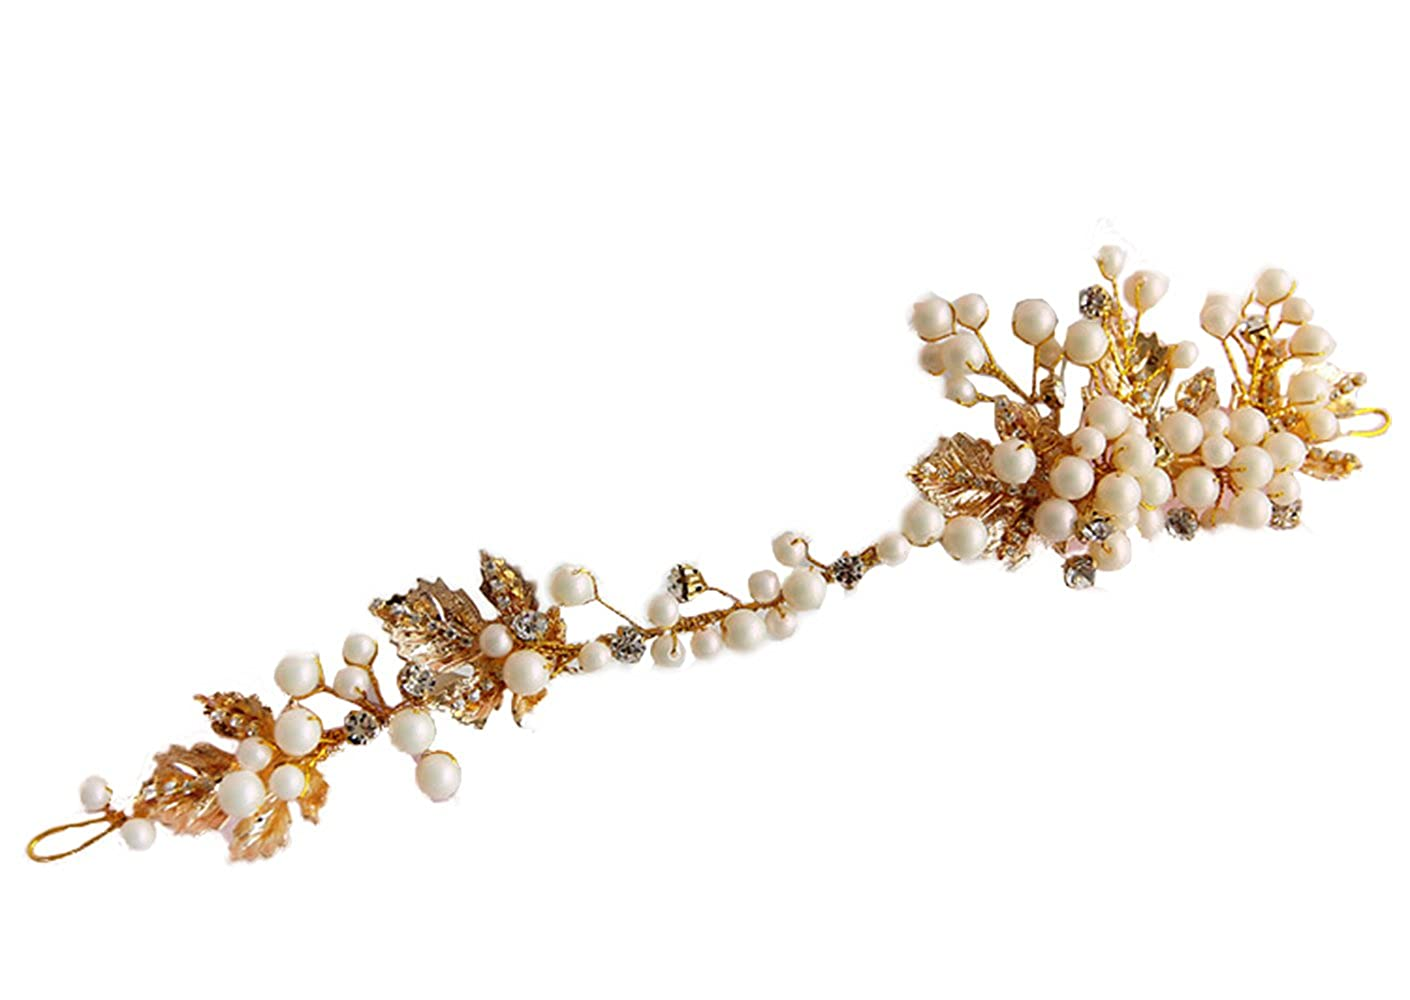 Gold color leaf headband pearl jewelry crystal tiara women crown hair ornaments bridal wedding accessories Gift 90